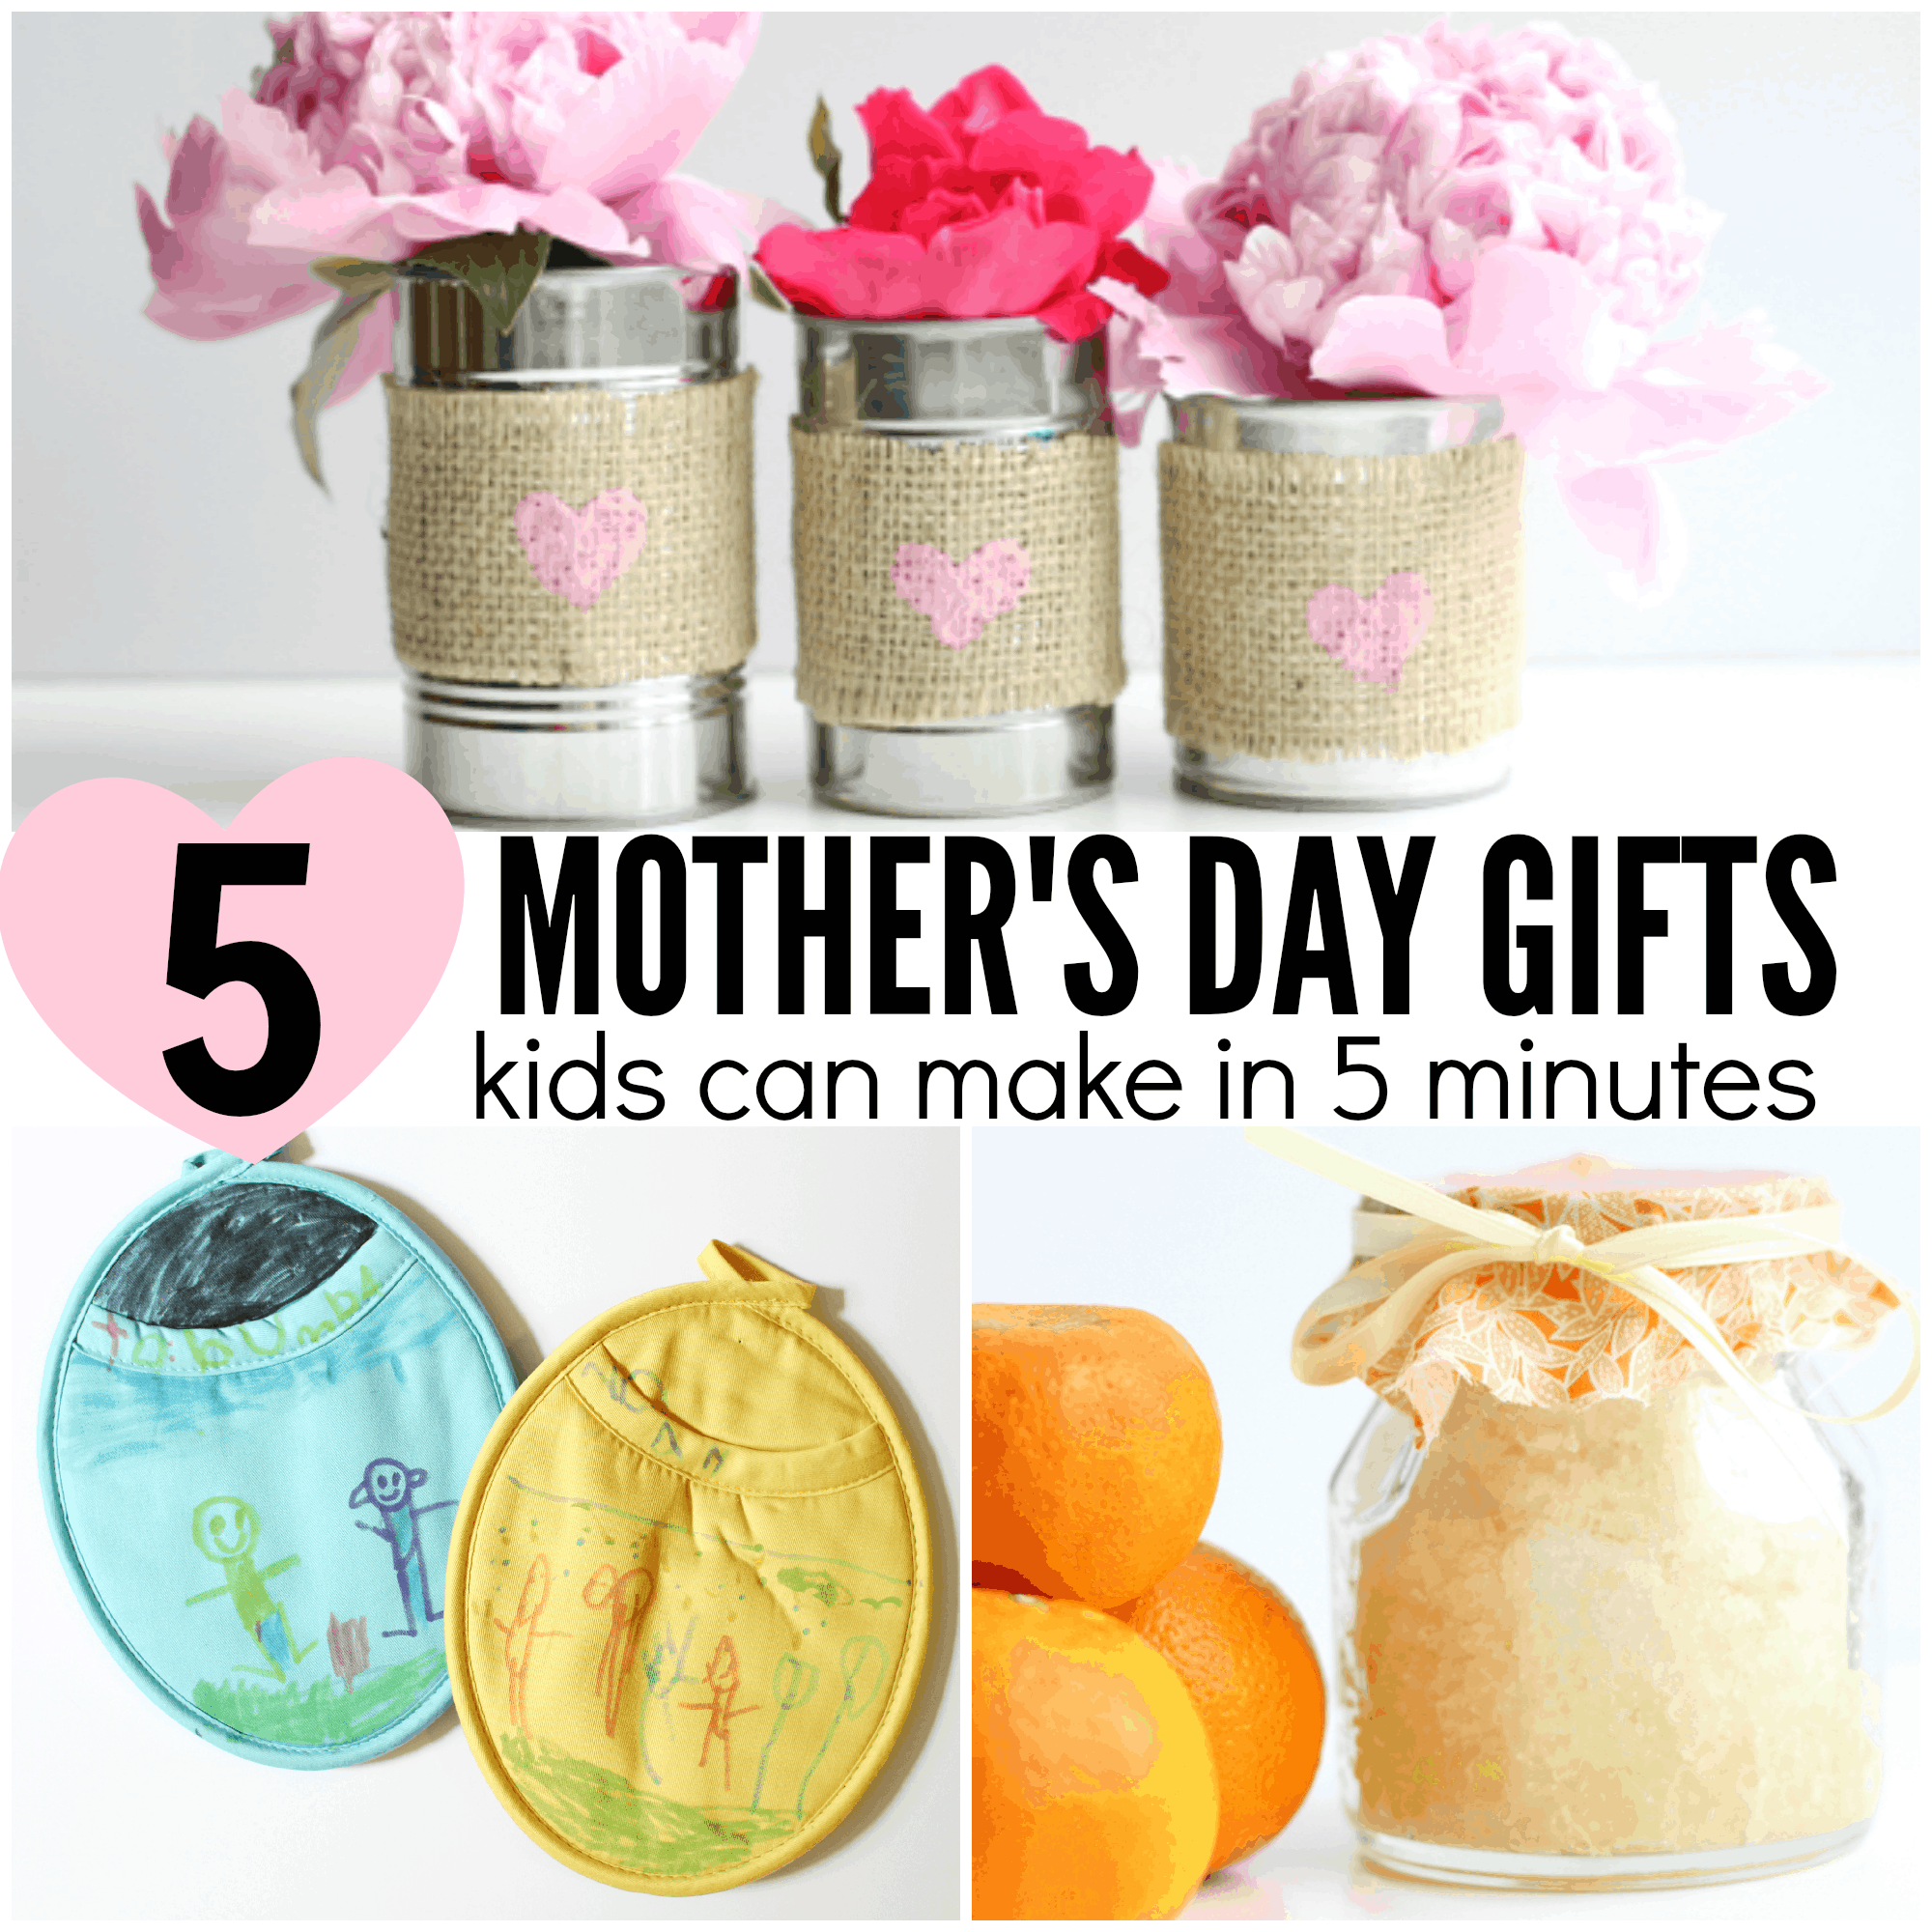 Homemade Flower Pots 5 Mother S Day Gifts Kids Can Make In 5 Minutes Or Less